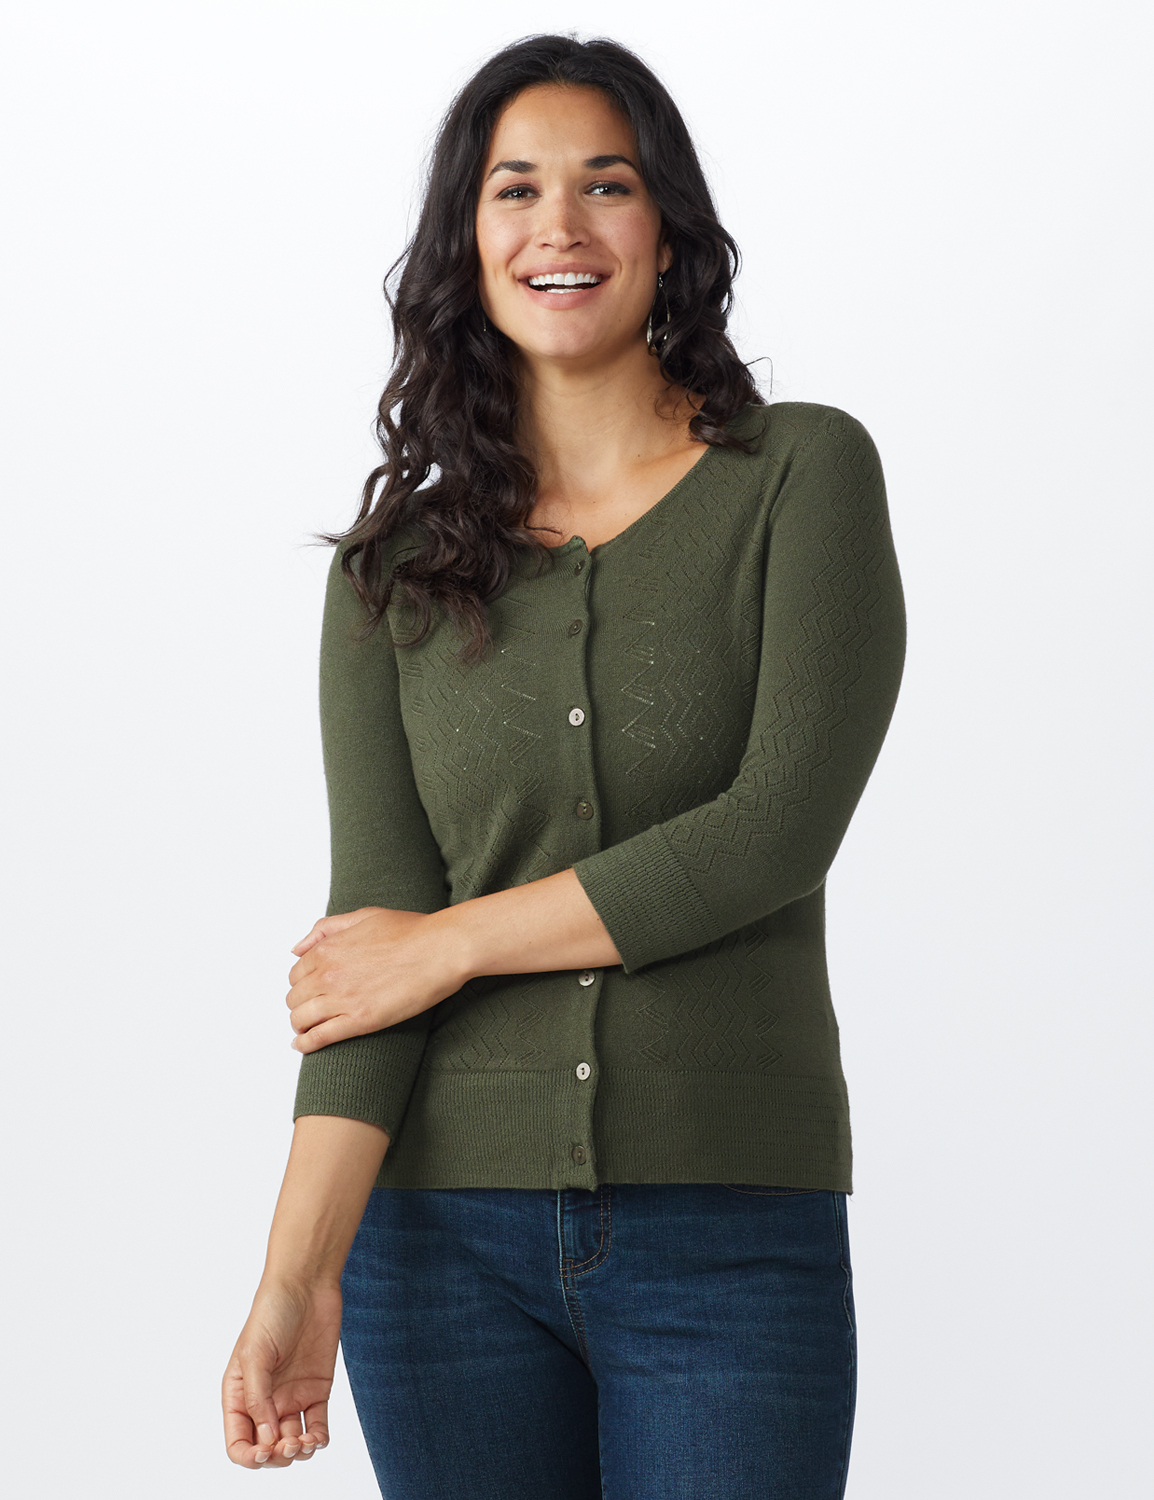 Roz & Ali Pointelle Button-Up Cardigan - Misses -Olive - Front